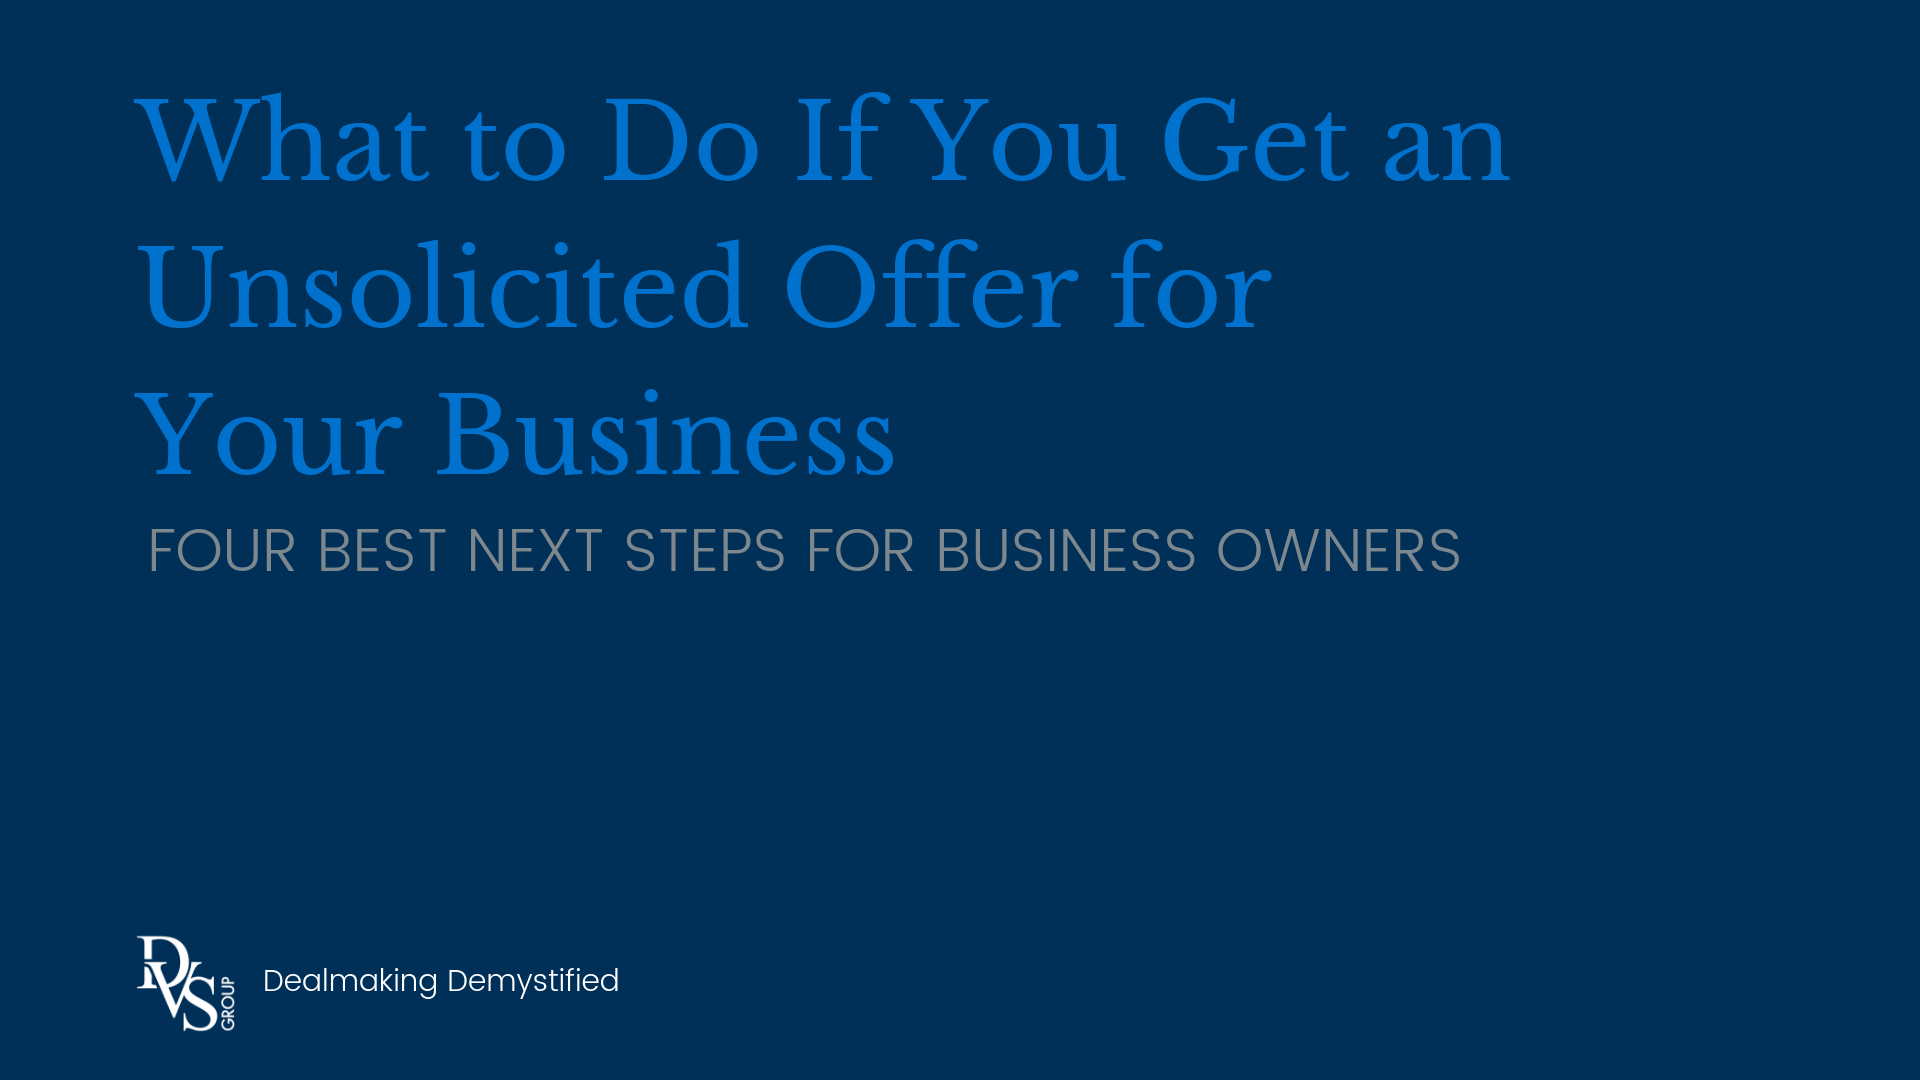 What To Do If You Get an Unsolicited Offer for Your Business